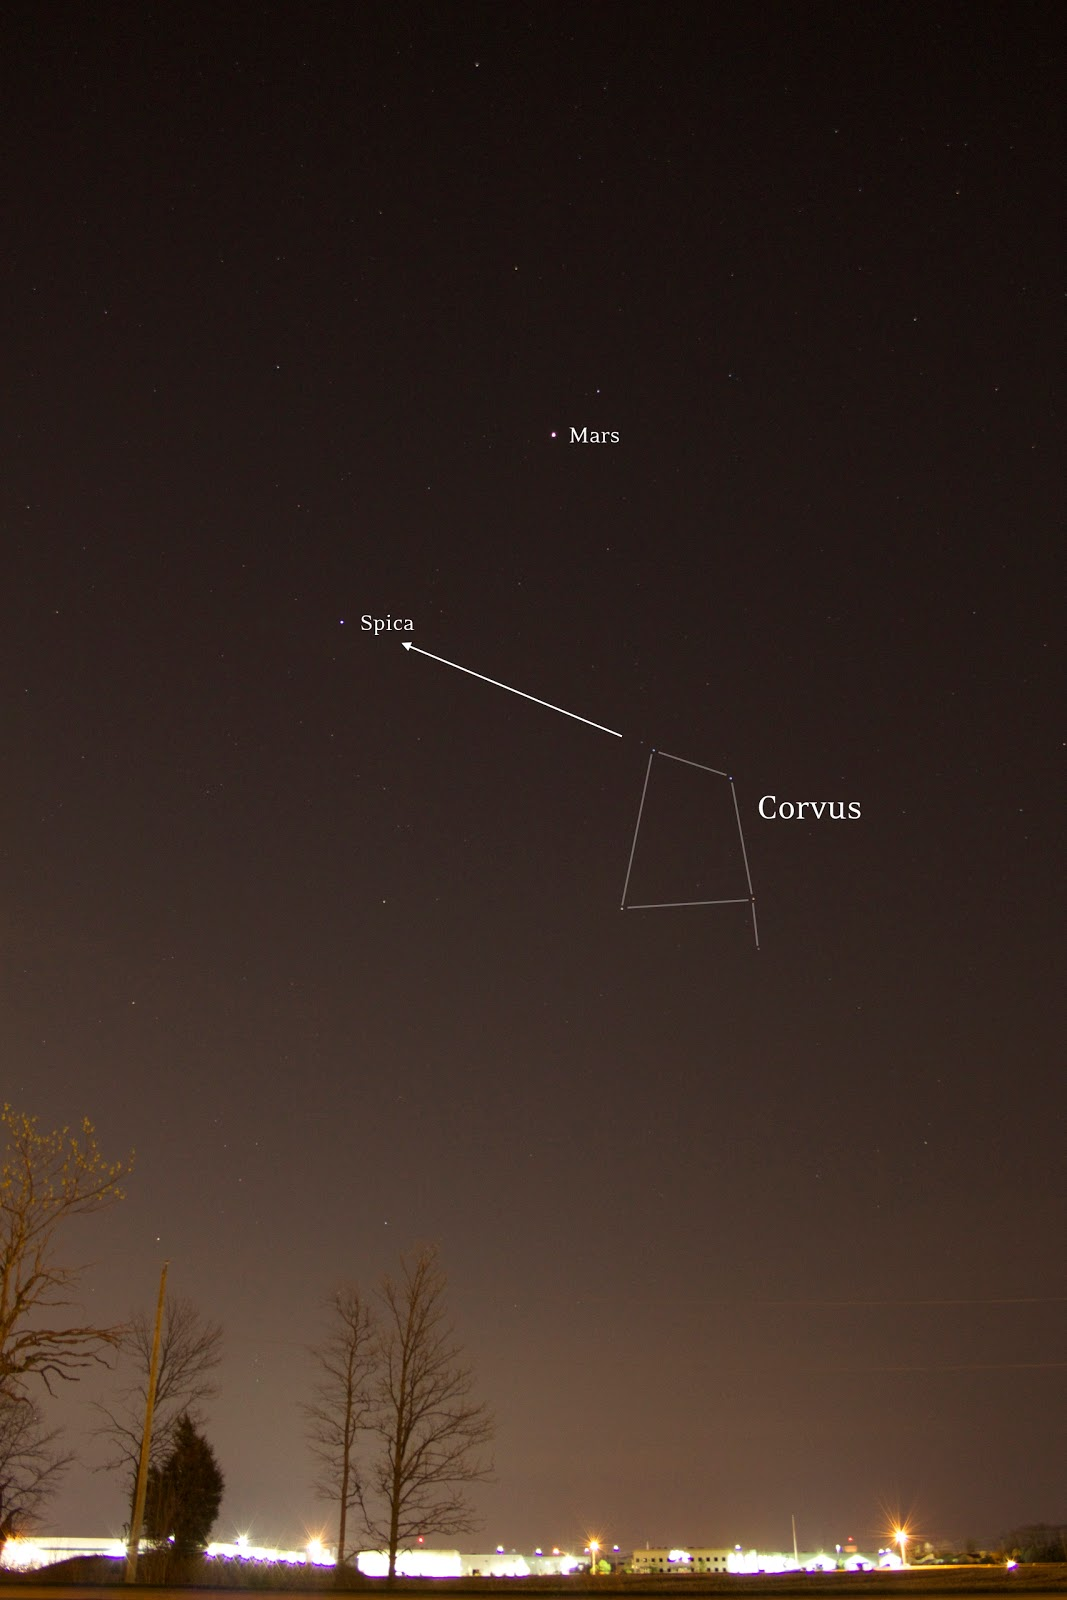 corvus point to spica